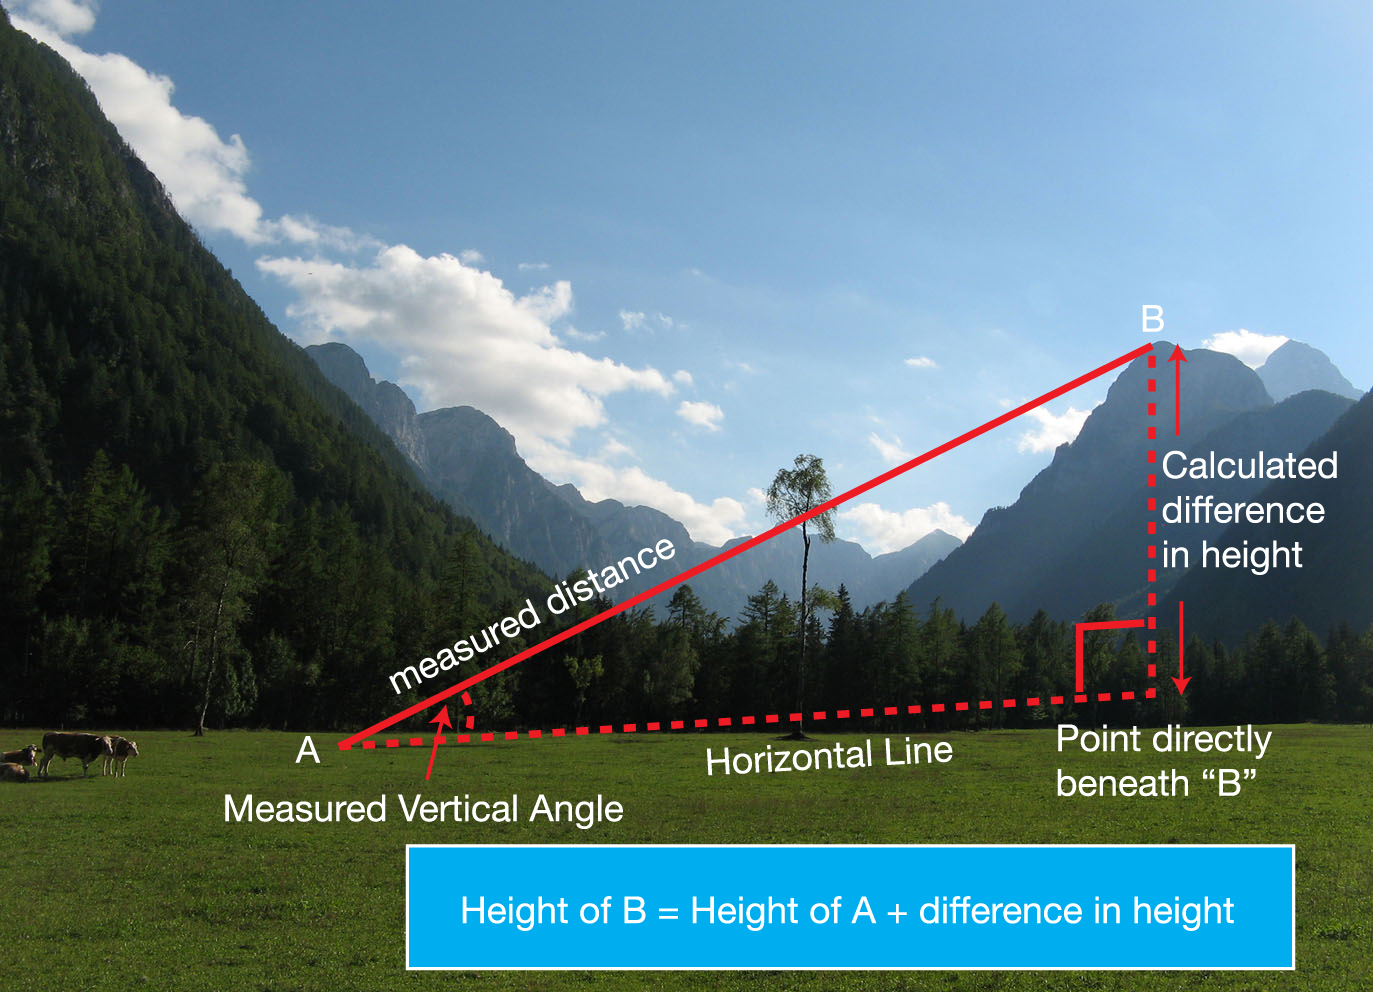 Image of mountains with a diagram overlaid explaining how to measure difference in height by vertical angles